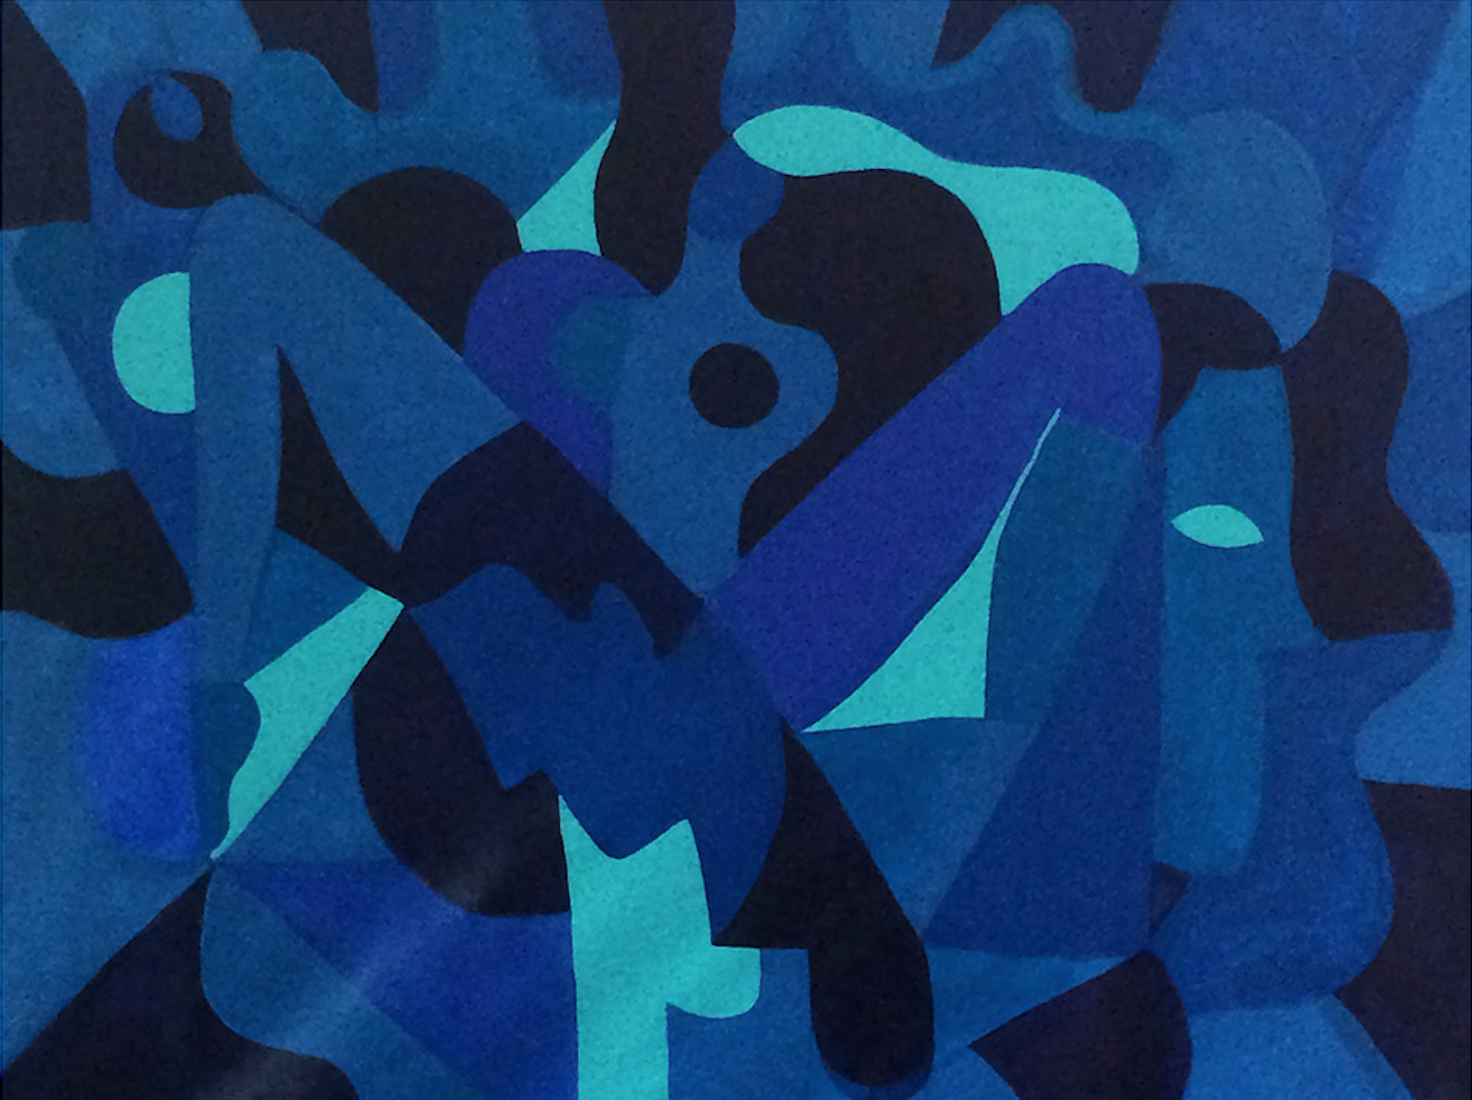 Hanna Barczyk,  Blue Tango , 2018, acrylic on canvas, 36 x 48 inches  (inquire)